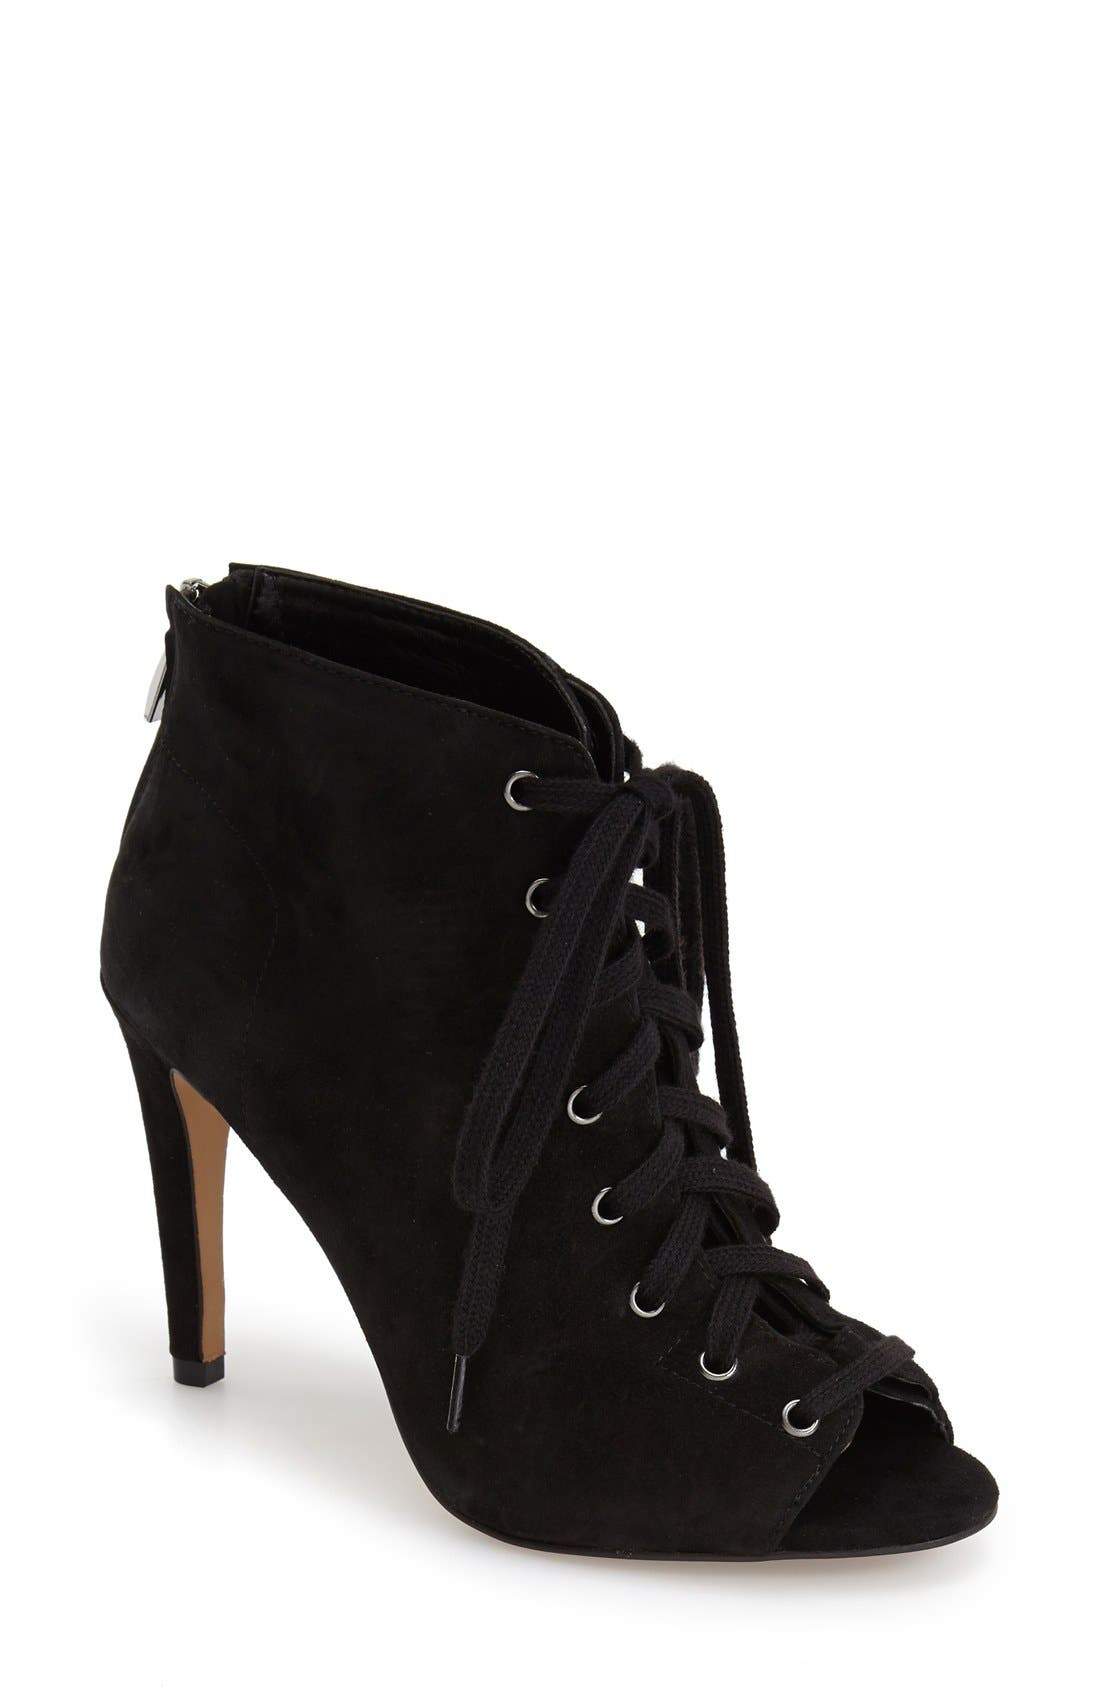 Alternate Image 1 Selected - French Connection 'Quillan' Lace-Up Peep Toe Bootie (Women)